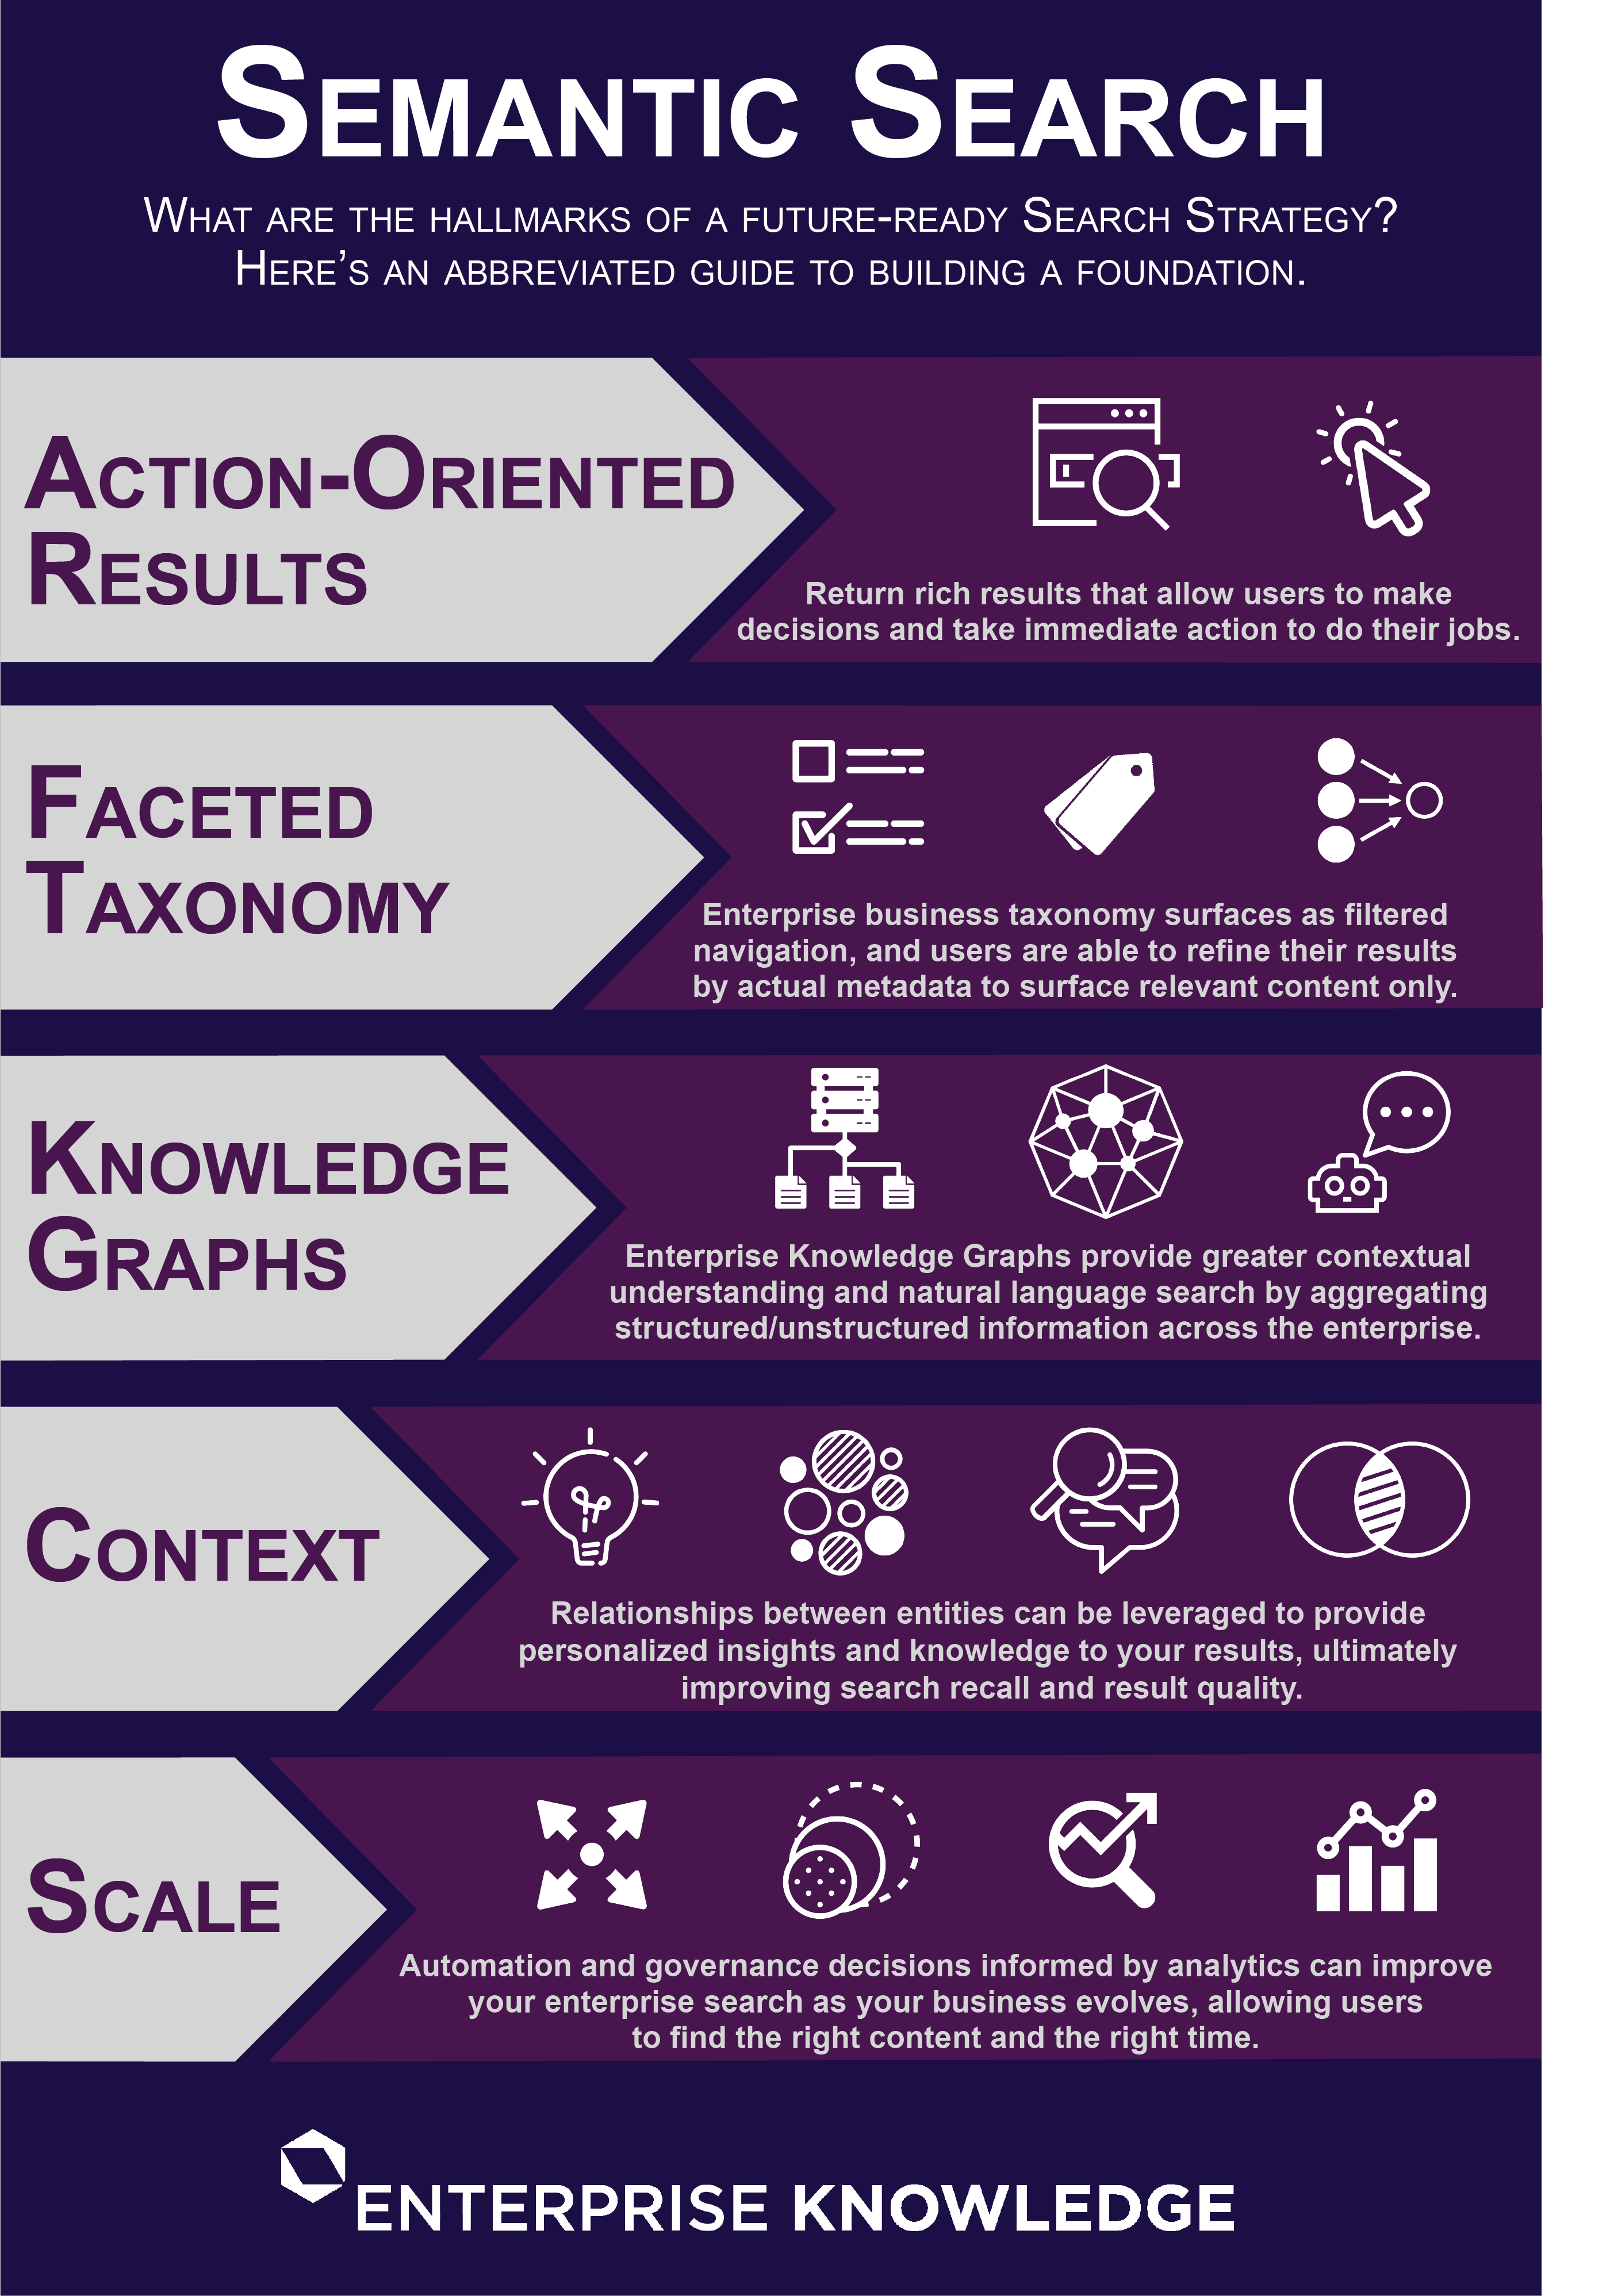 The 5 key components to build the foundation for a future-ready search strategy are: action-oriented results, faceted taxonomy, knowledge graphs, context, and scale.